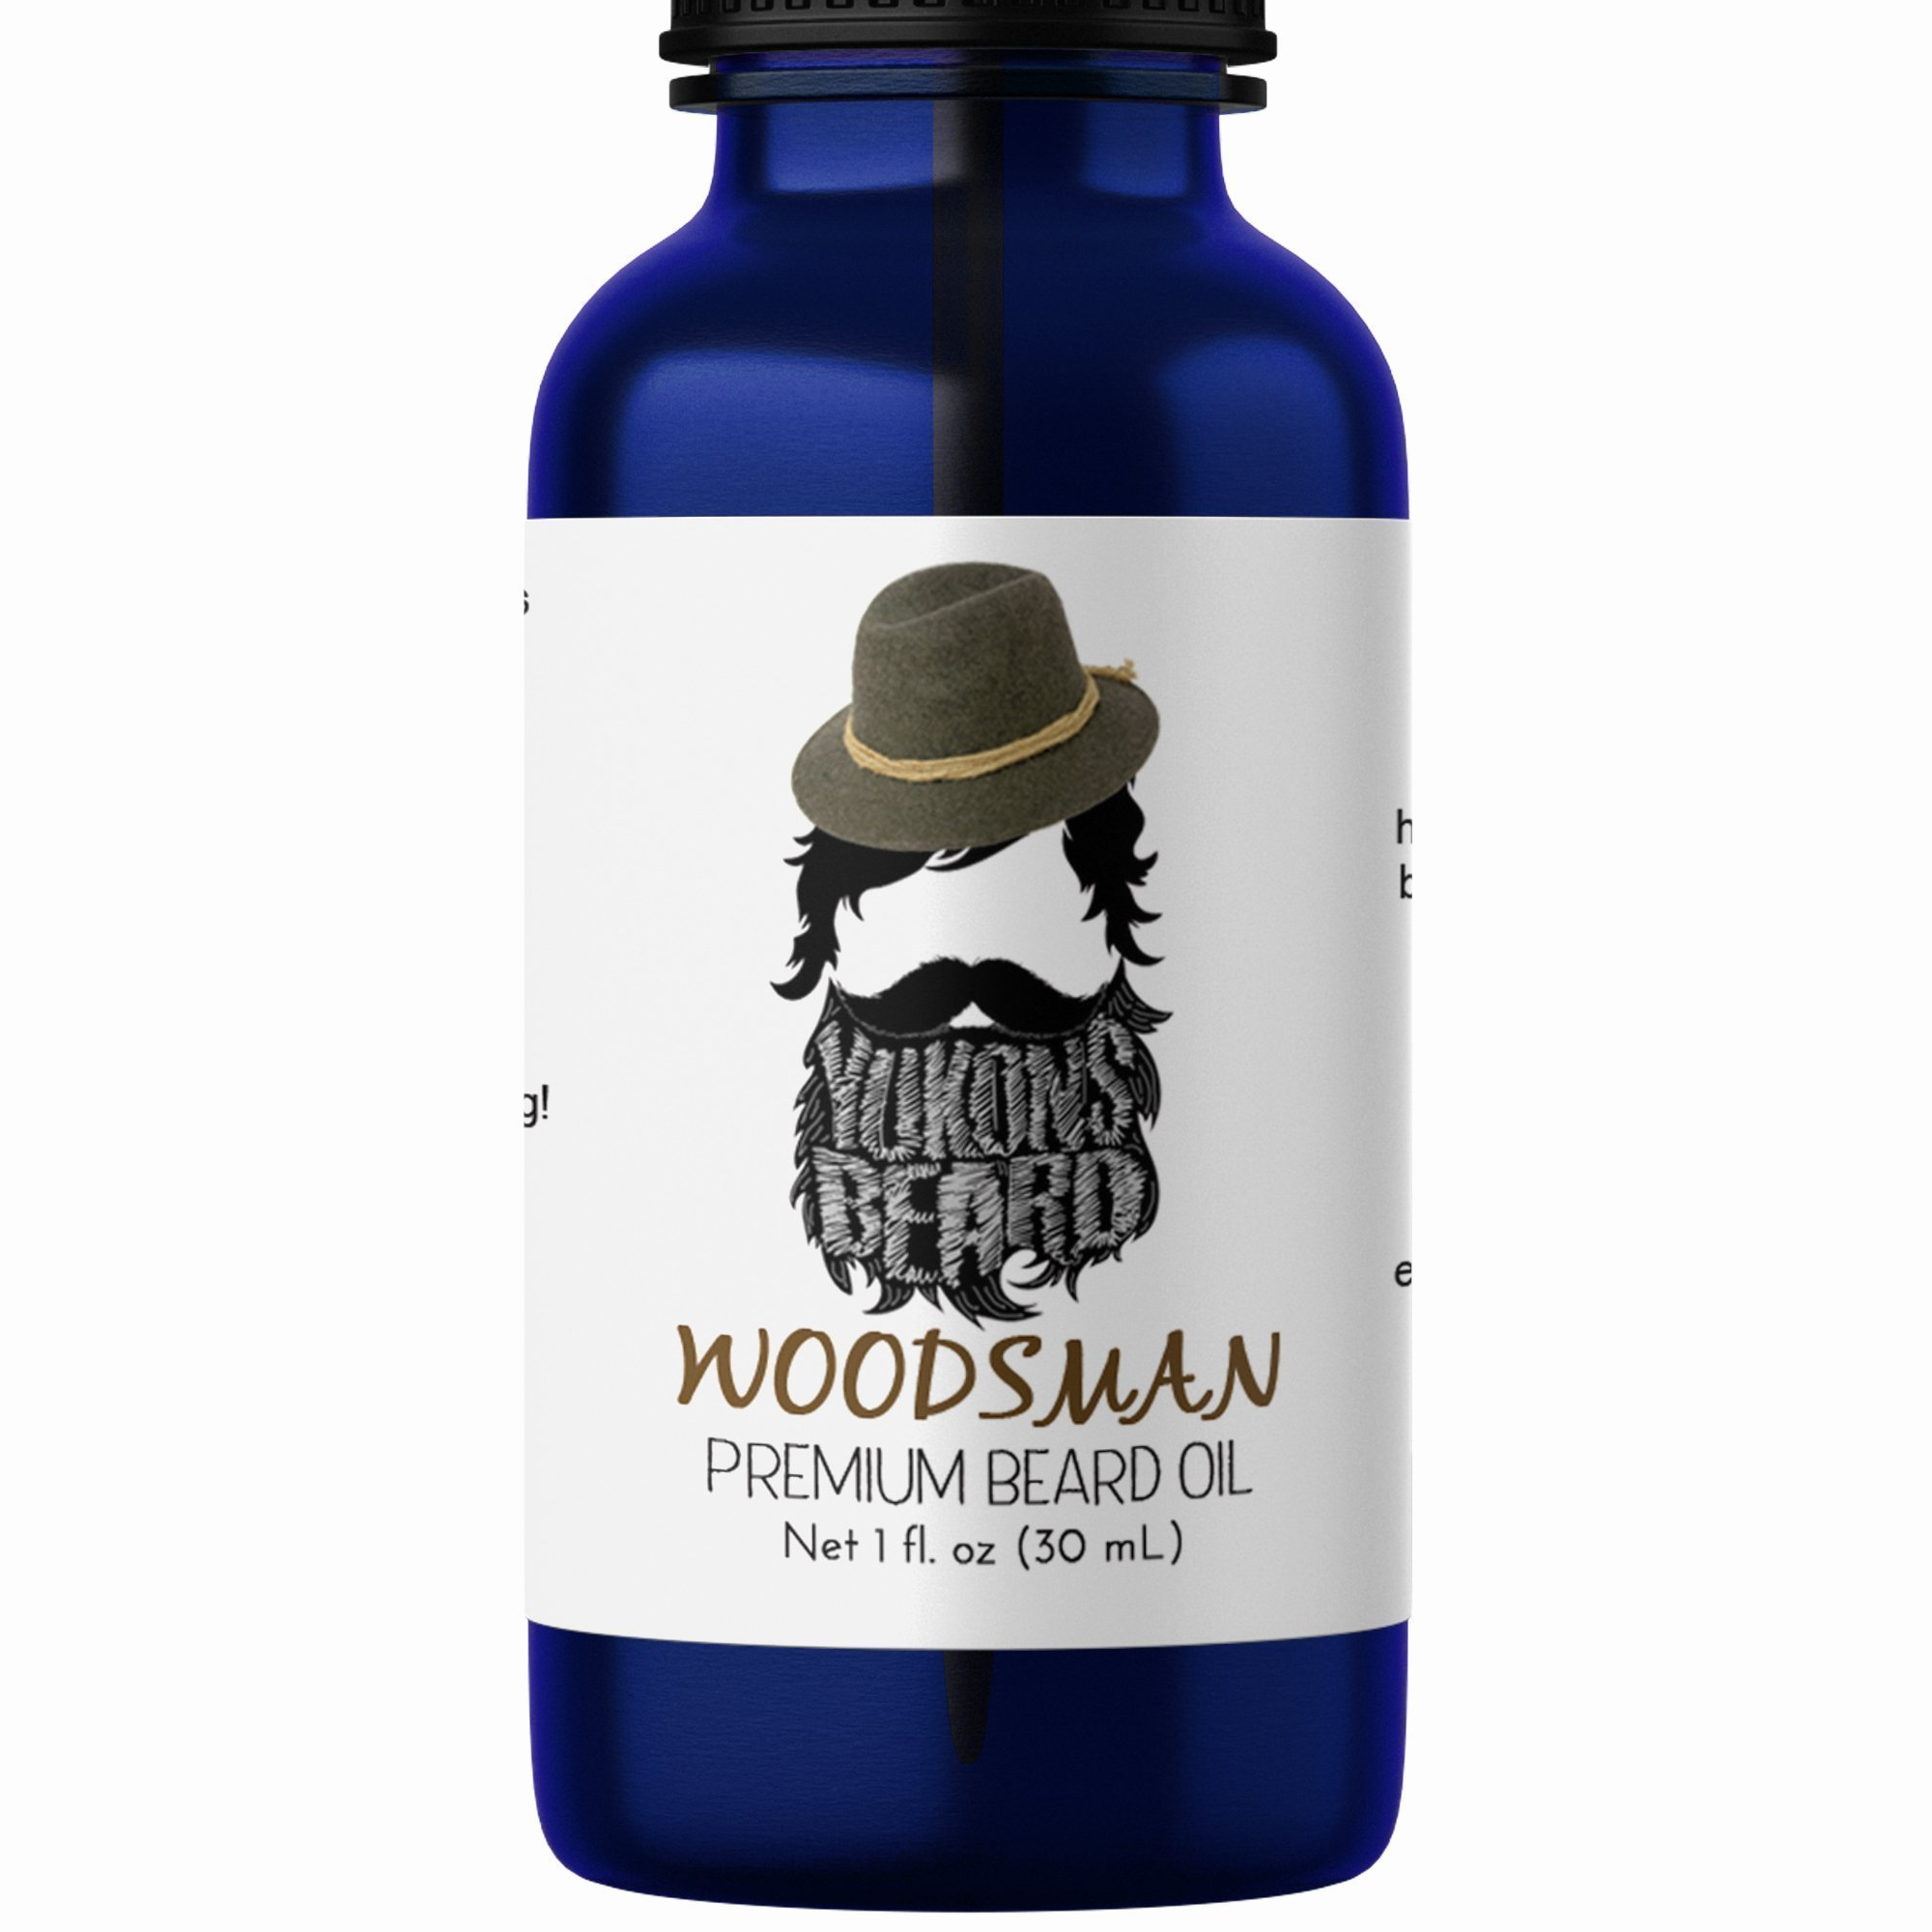 Premium Beard Oil by Yukons Beard - Better Oil, Better Beard - Stops Itchy Beard using All Natural Ingredients, Best Beard Oil to Grow Your Beard - Softens Coarse Bristly Hair